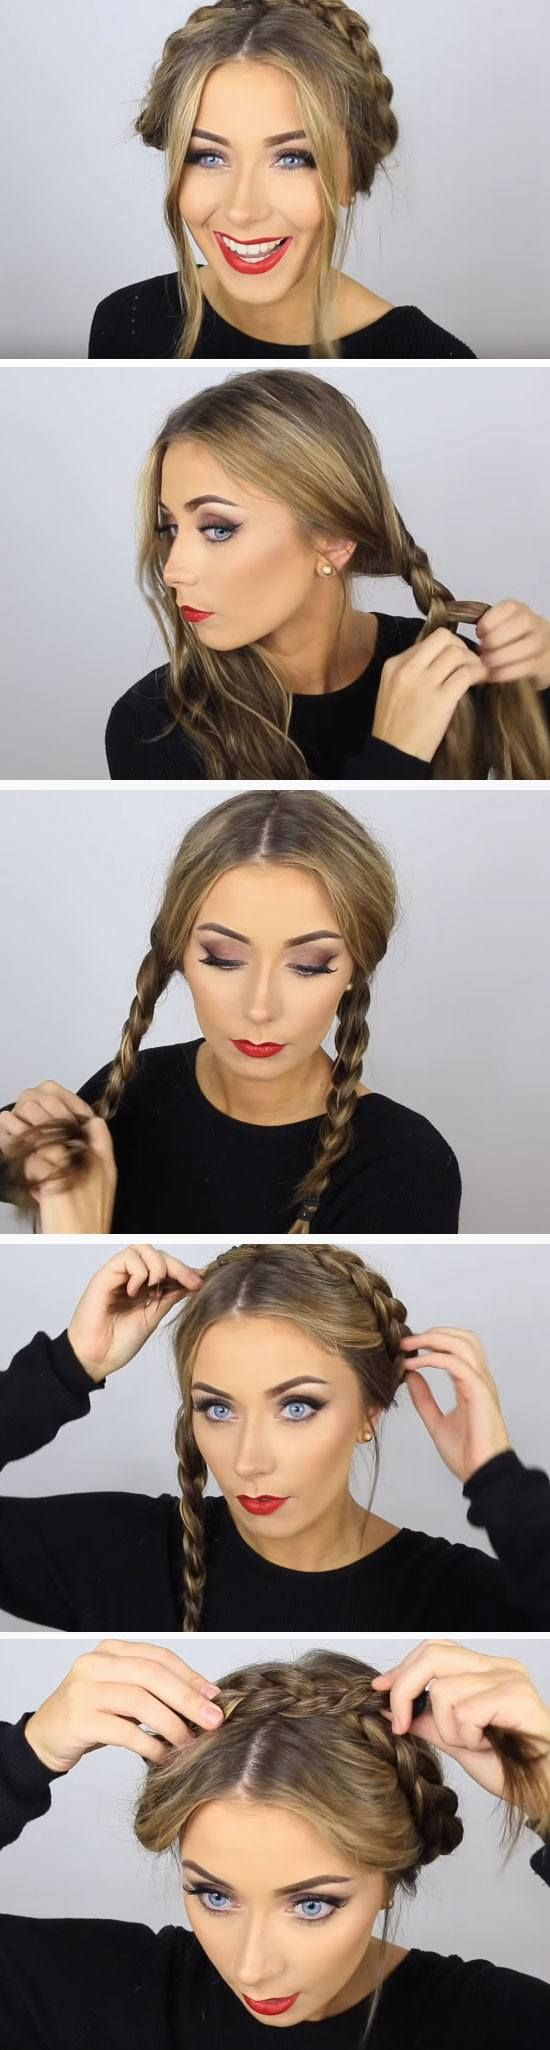 Prime 1000 Ideas About Fall Hairstyles On Pinterest Hairstyles 2016 Short Hairstyles Gunalazisus